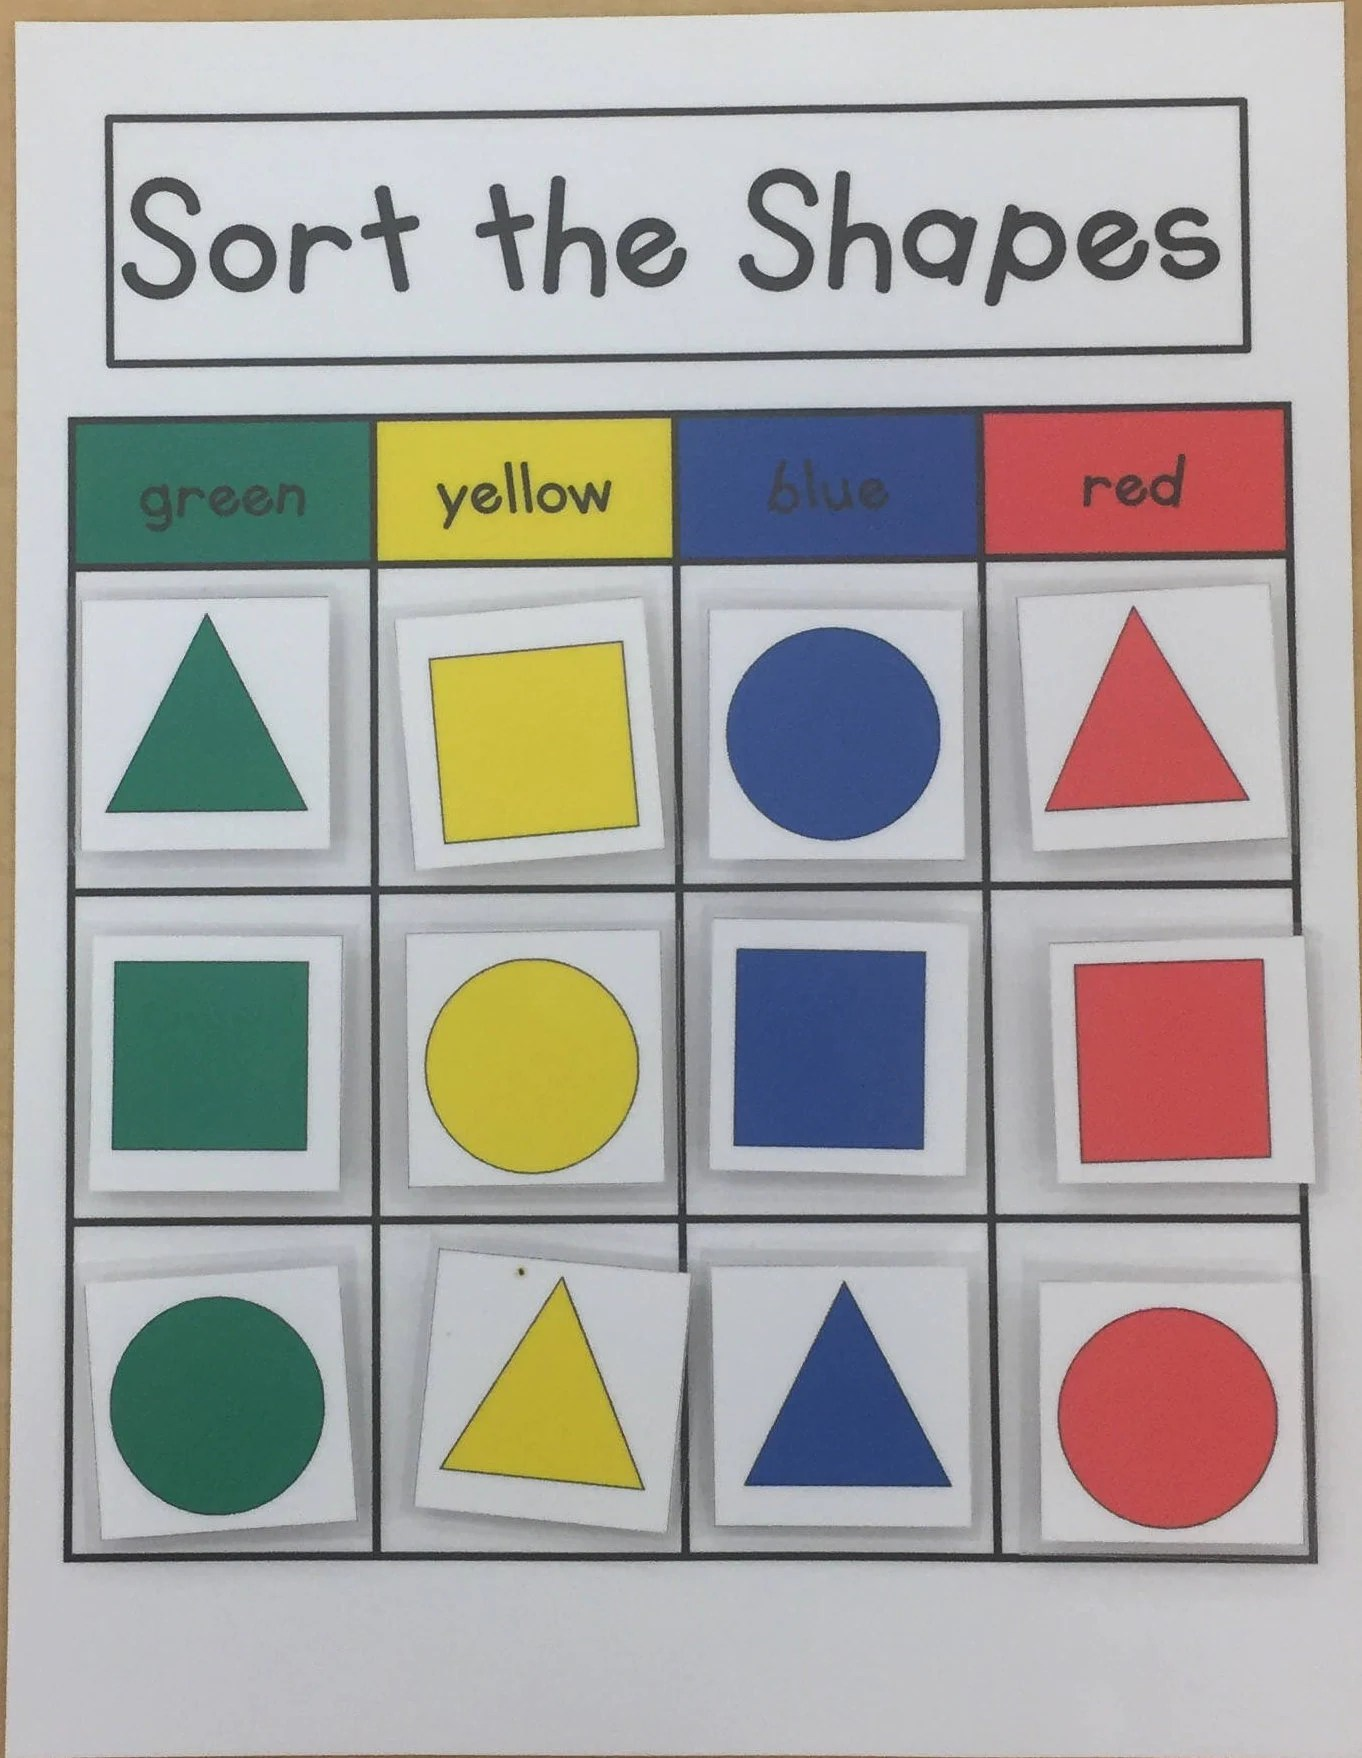 Sorting Shapes Kids Games Puzzles Learning Game Math